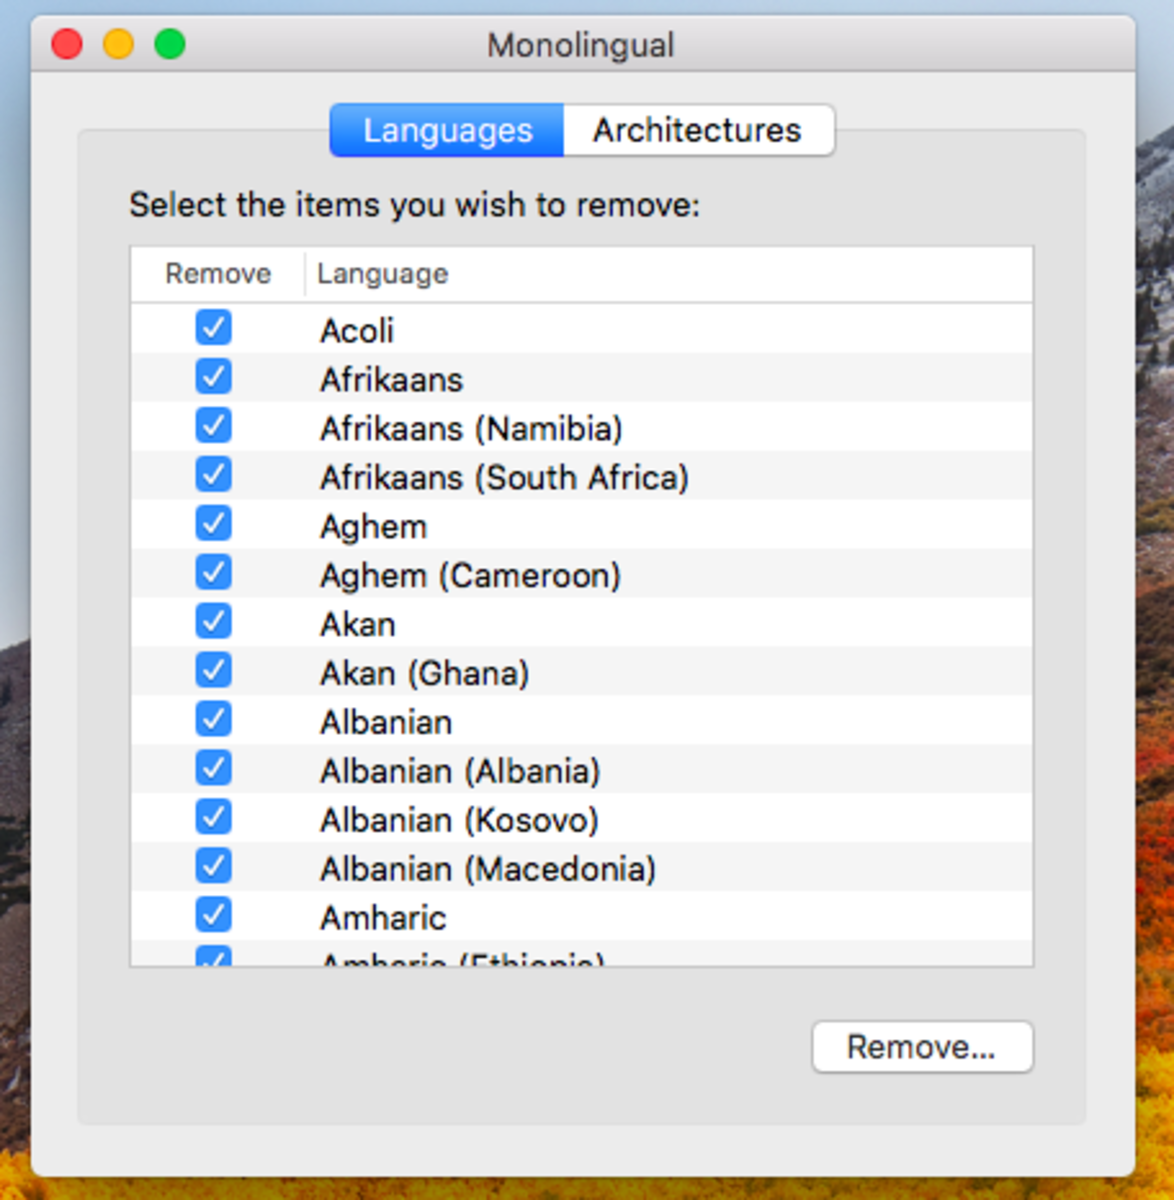 get-rid-of-unused-languages-and-architecture-specific-files-on-mac